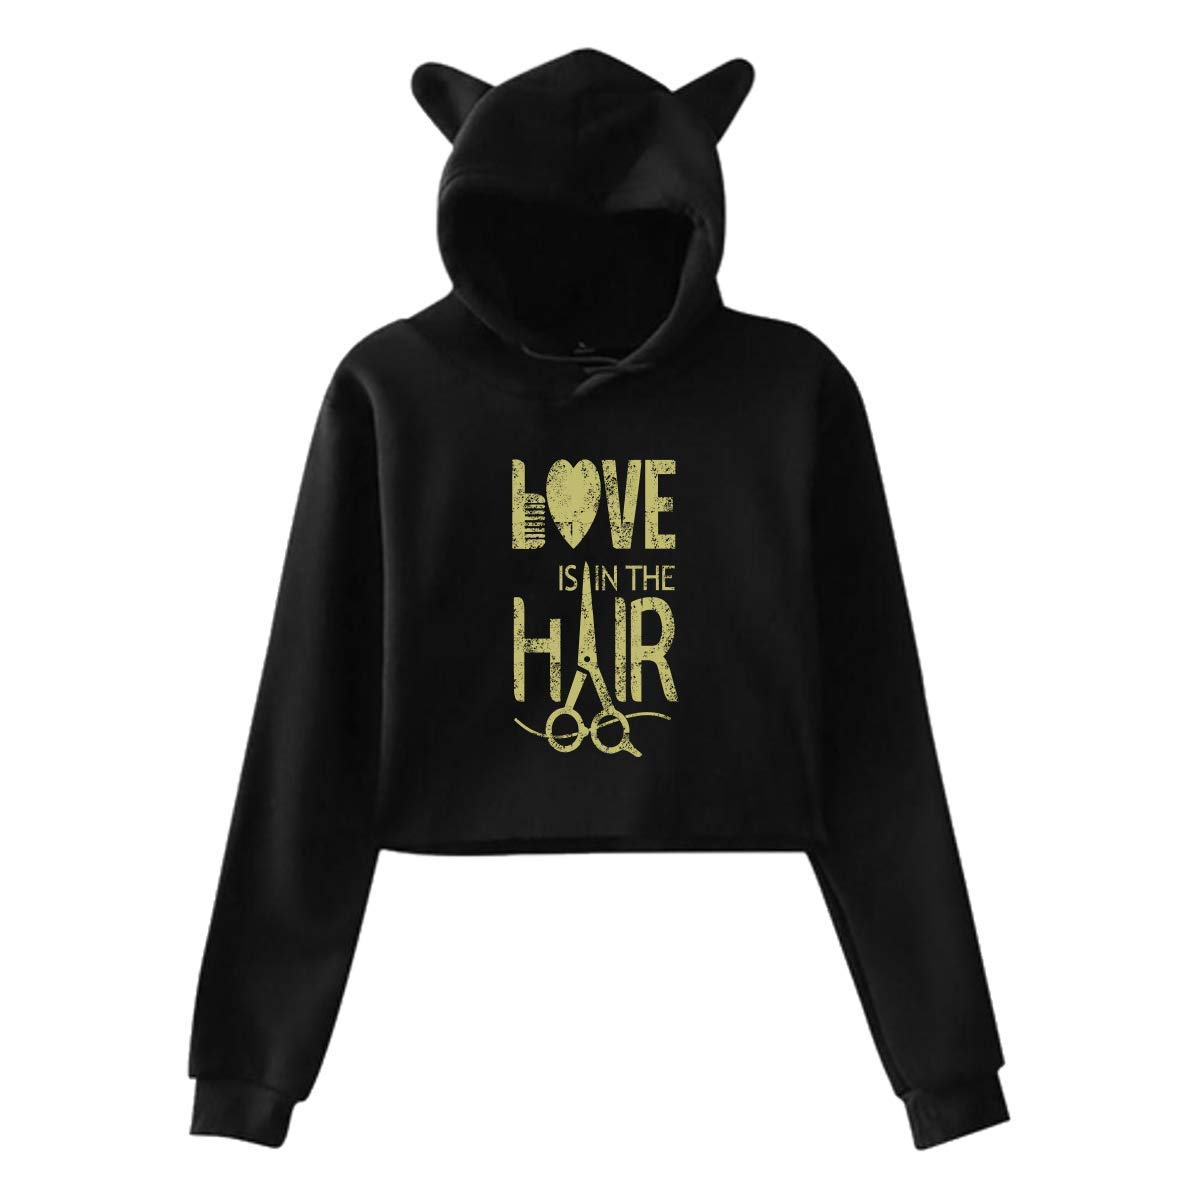 Hairstylist,Cat Ear 3D Printed Pullover Hoodie Sweater,Long Sleeve Buttery Soft Short-Length Jacket Womens Sexy Stylish Hoodie Sweater Girls Cute Hoodies